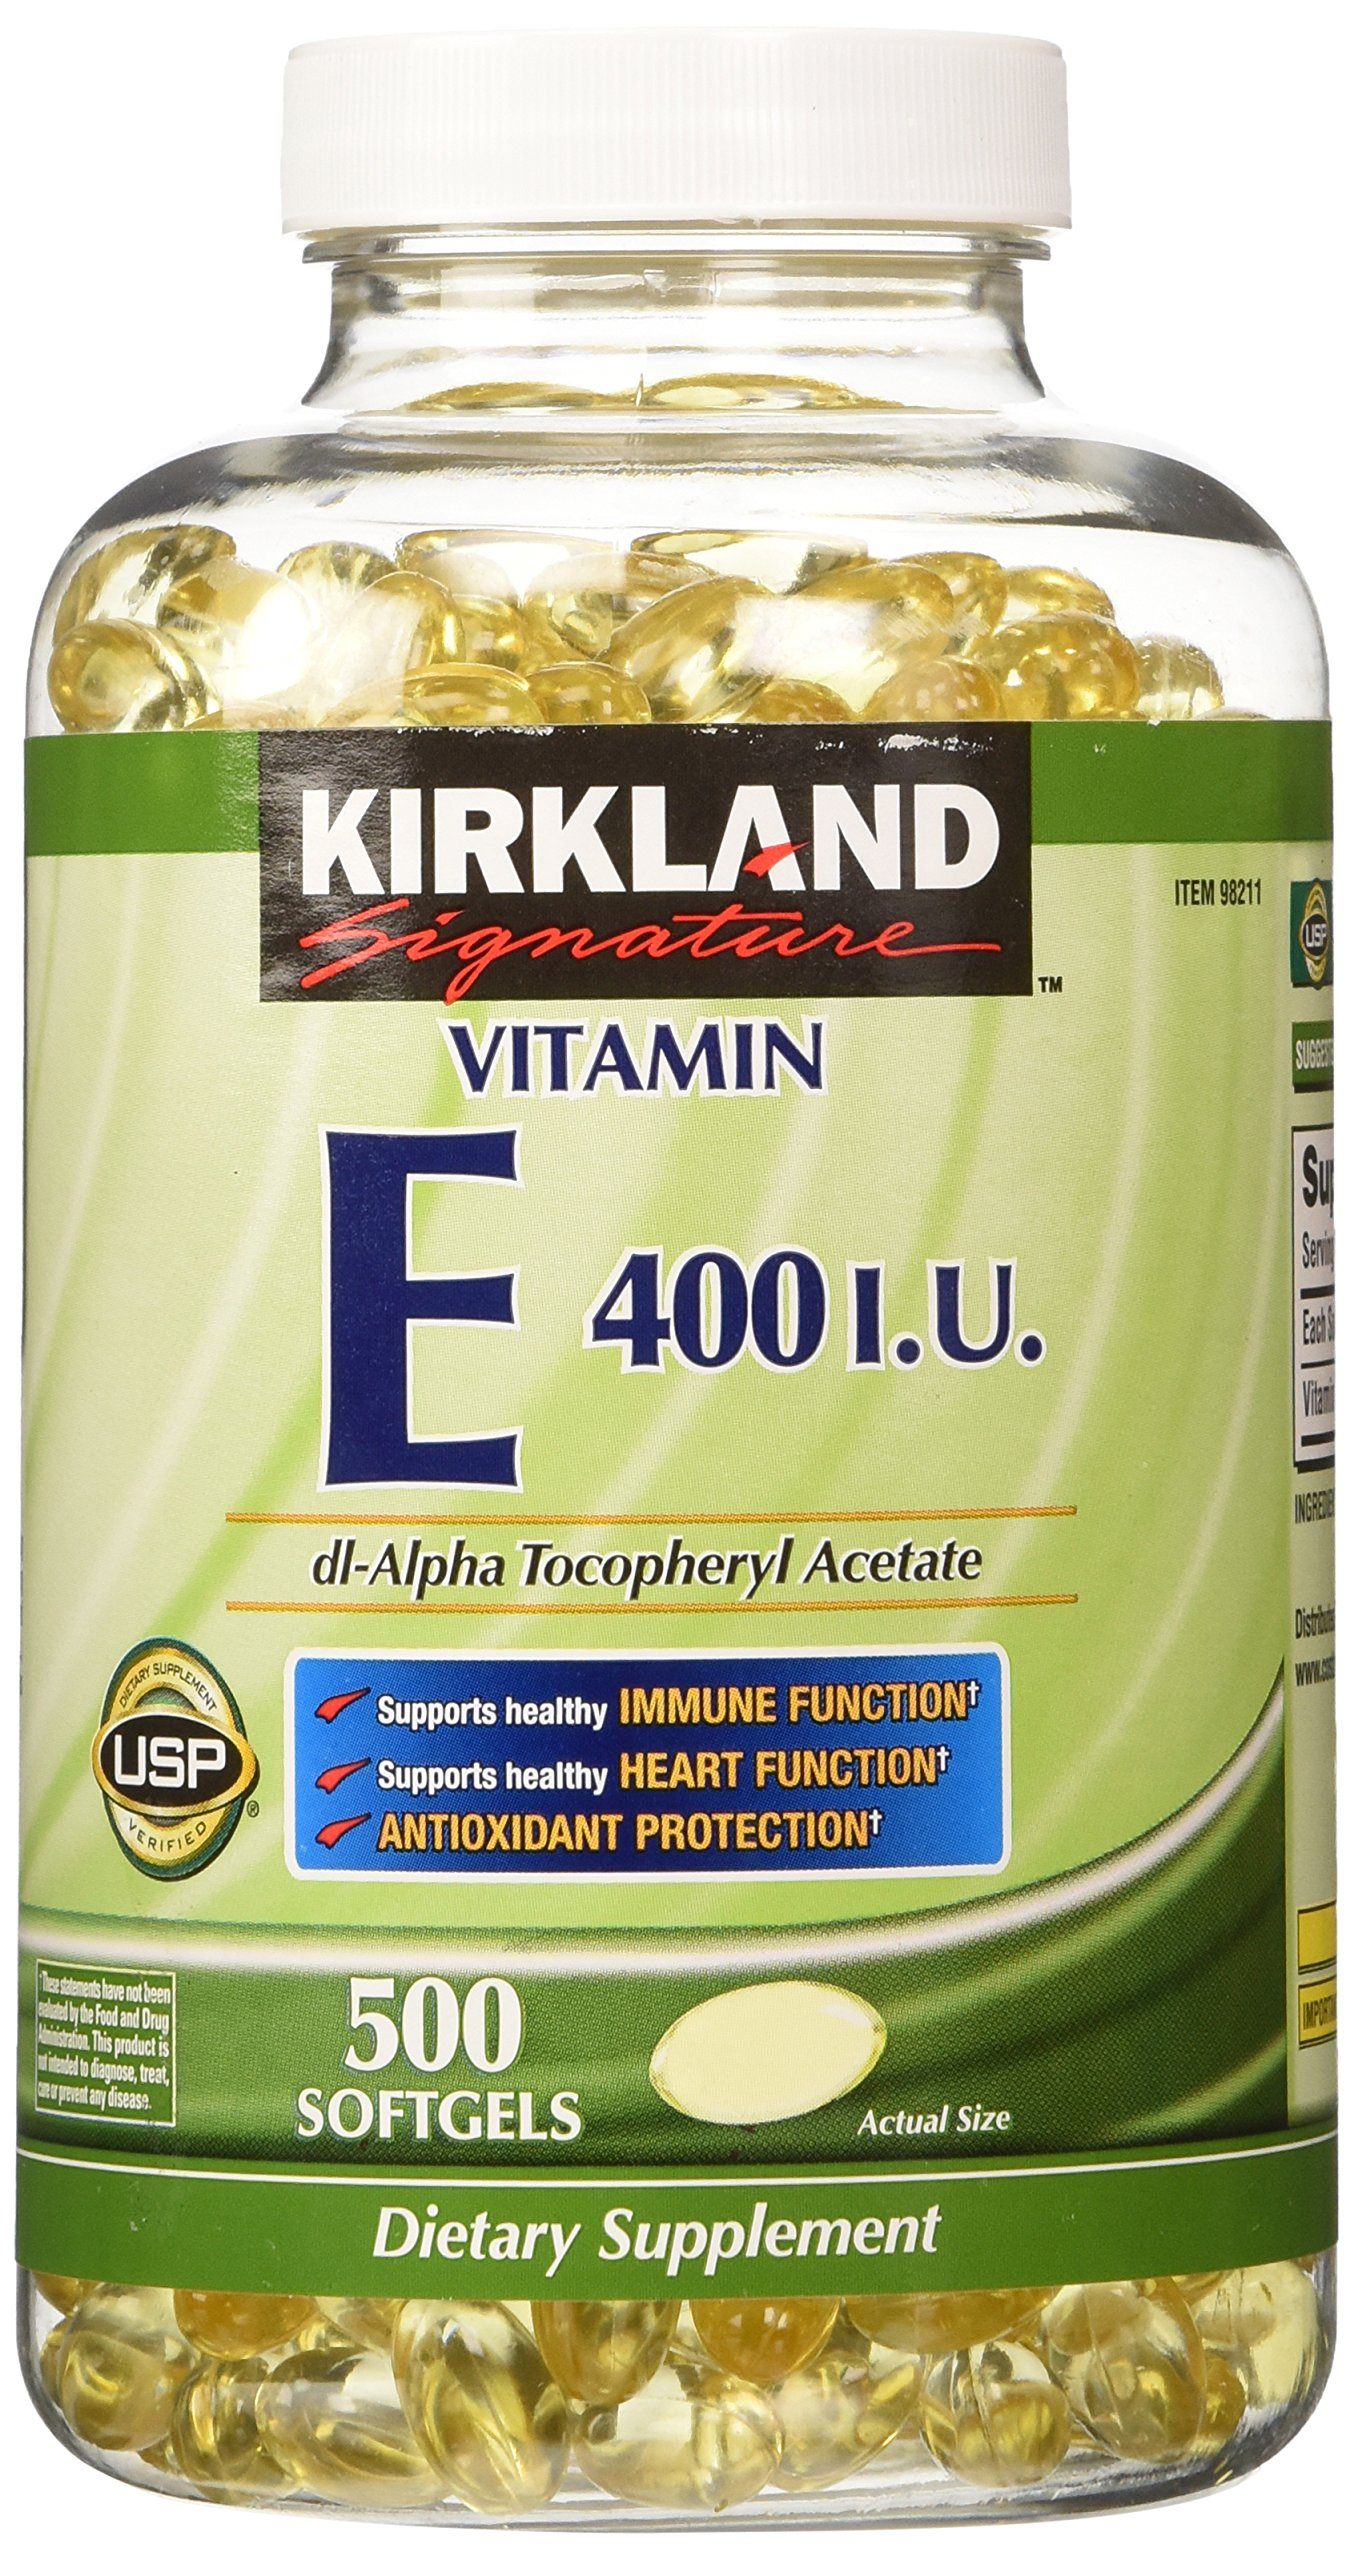 vitamin kirkland signature 400 capsules oil amazon softgels 500 bottle vitamins iu tablets mg complex health d3 supplements strength brand